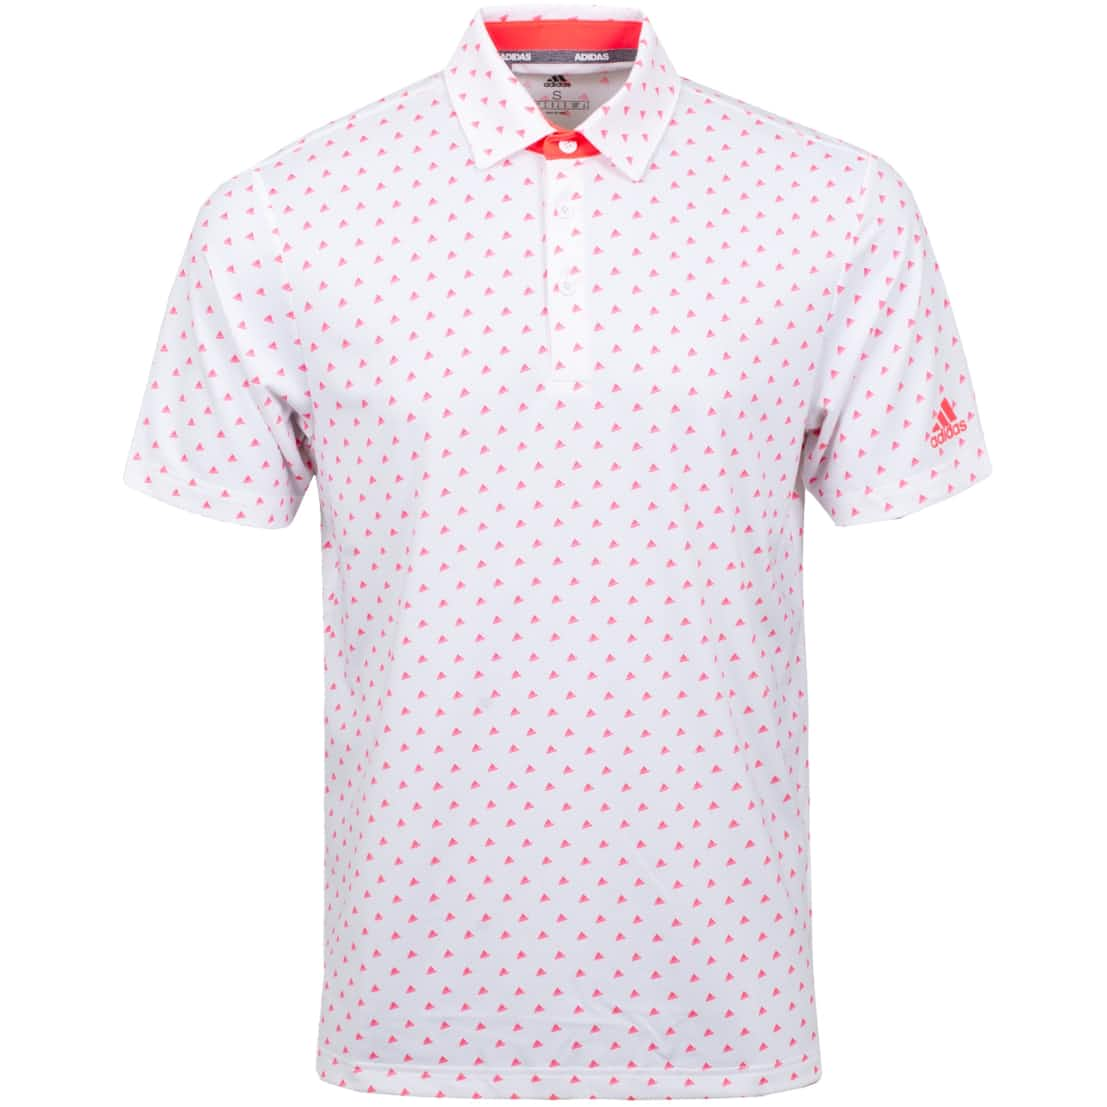 Sport Ultimate 365 Print Polo White/Flash Red - SS20